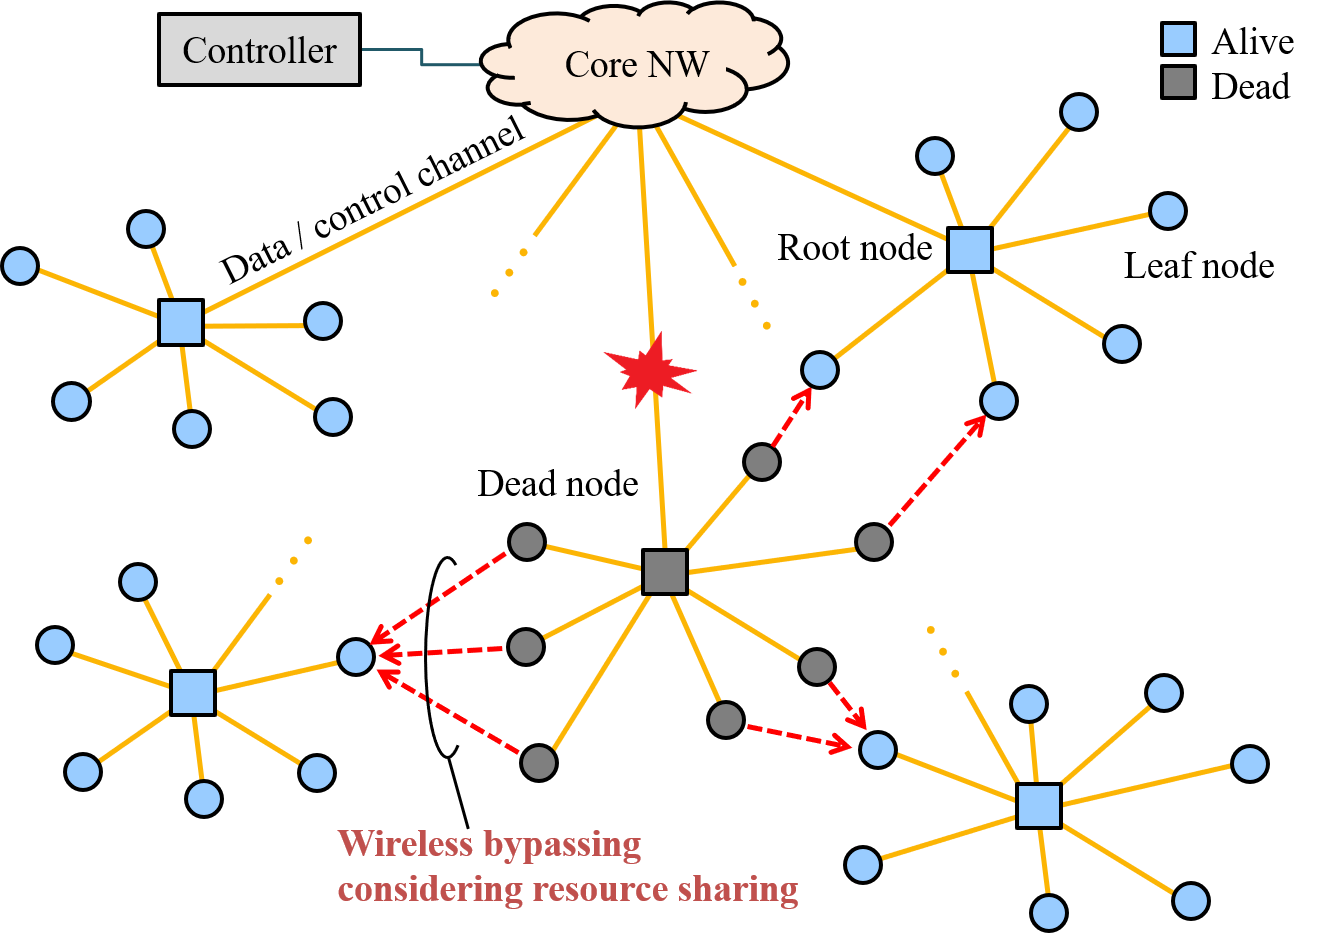 Bdcc Free Full Text Analysis Of Nonlinear Bypass Route Wired Network Diagram Graphical Abstract